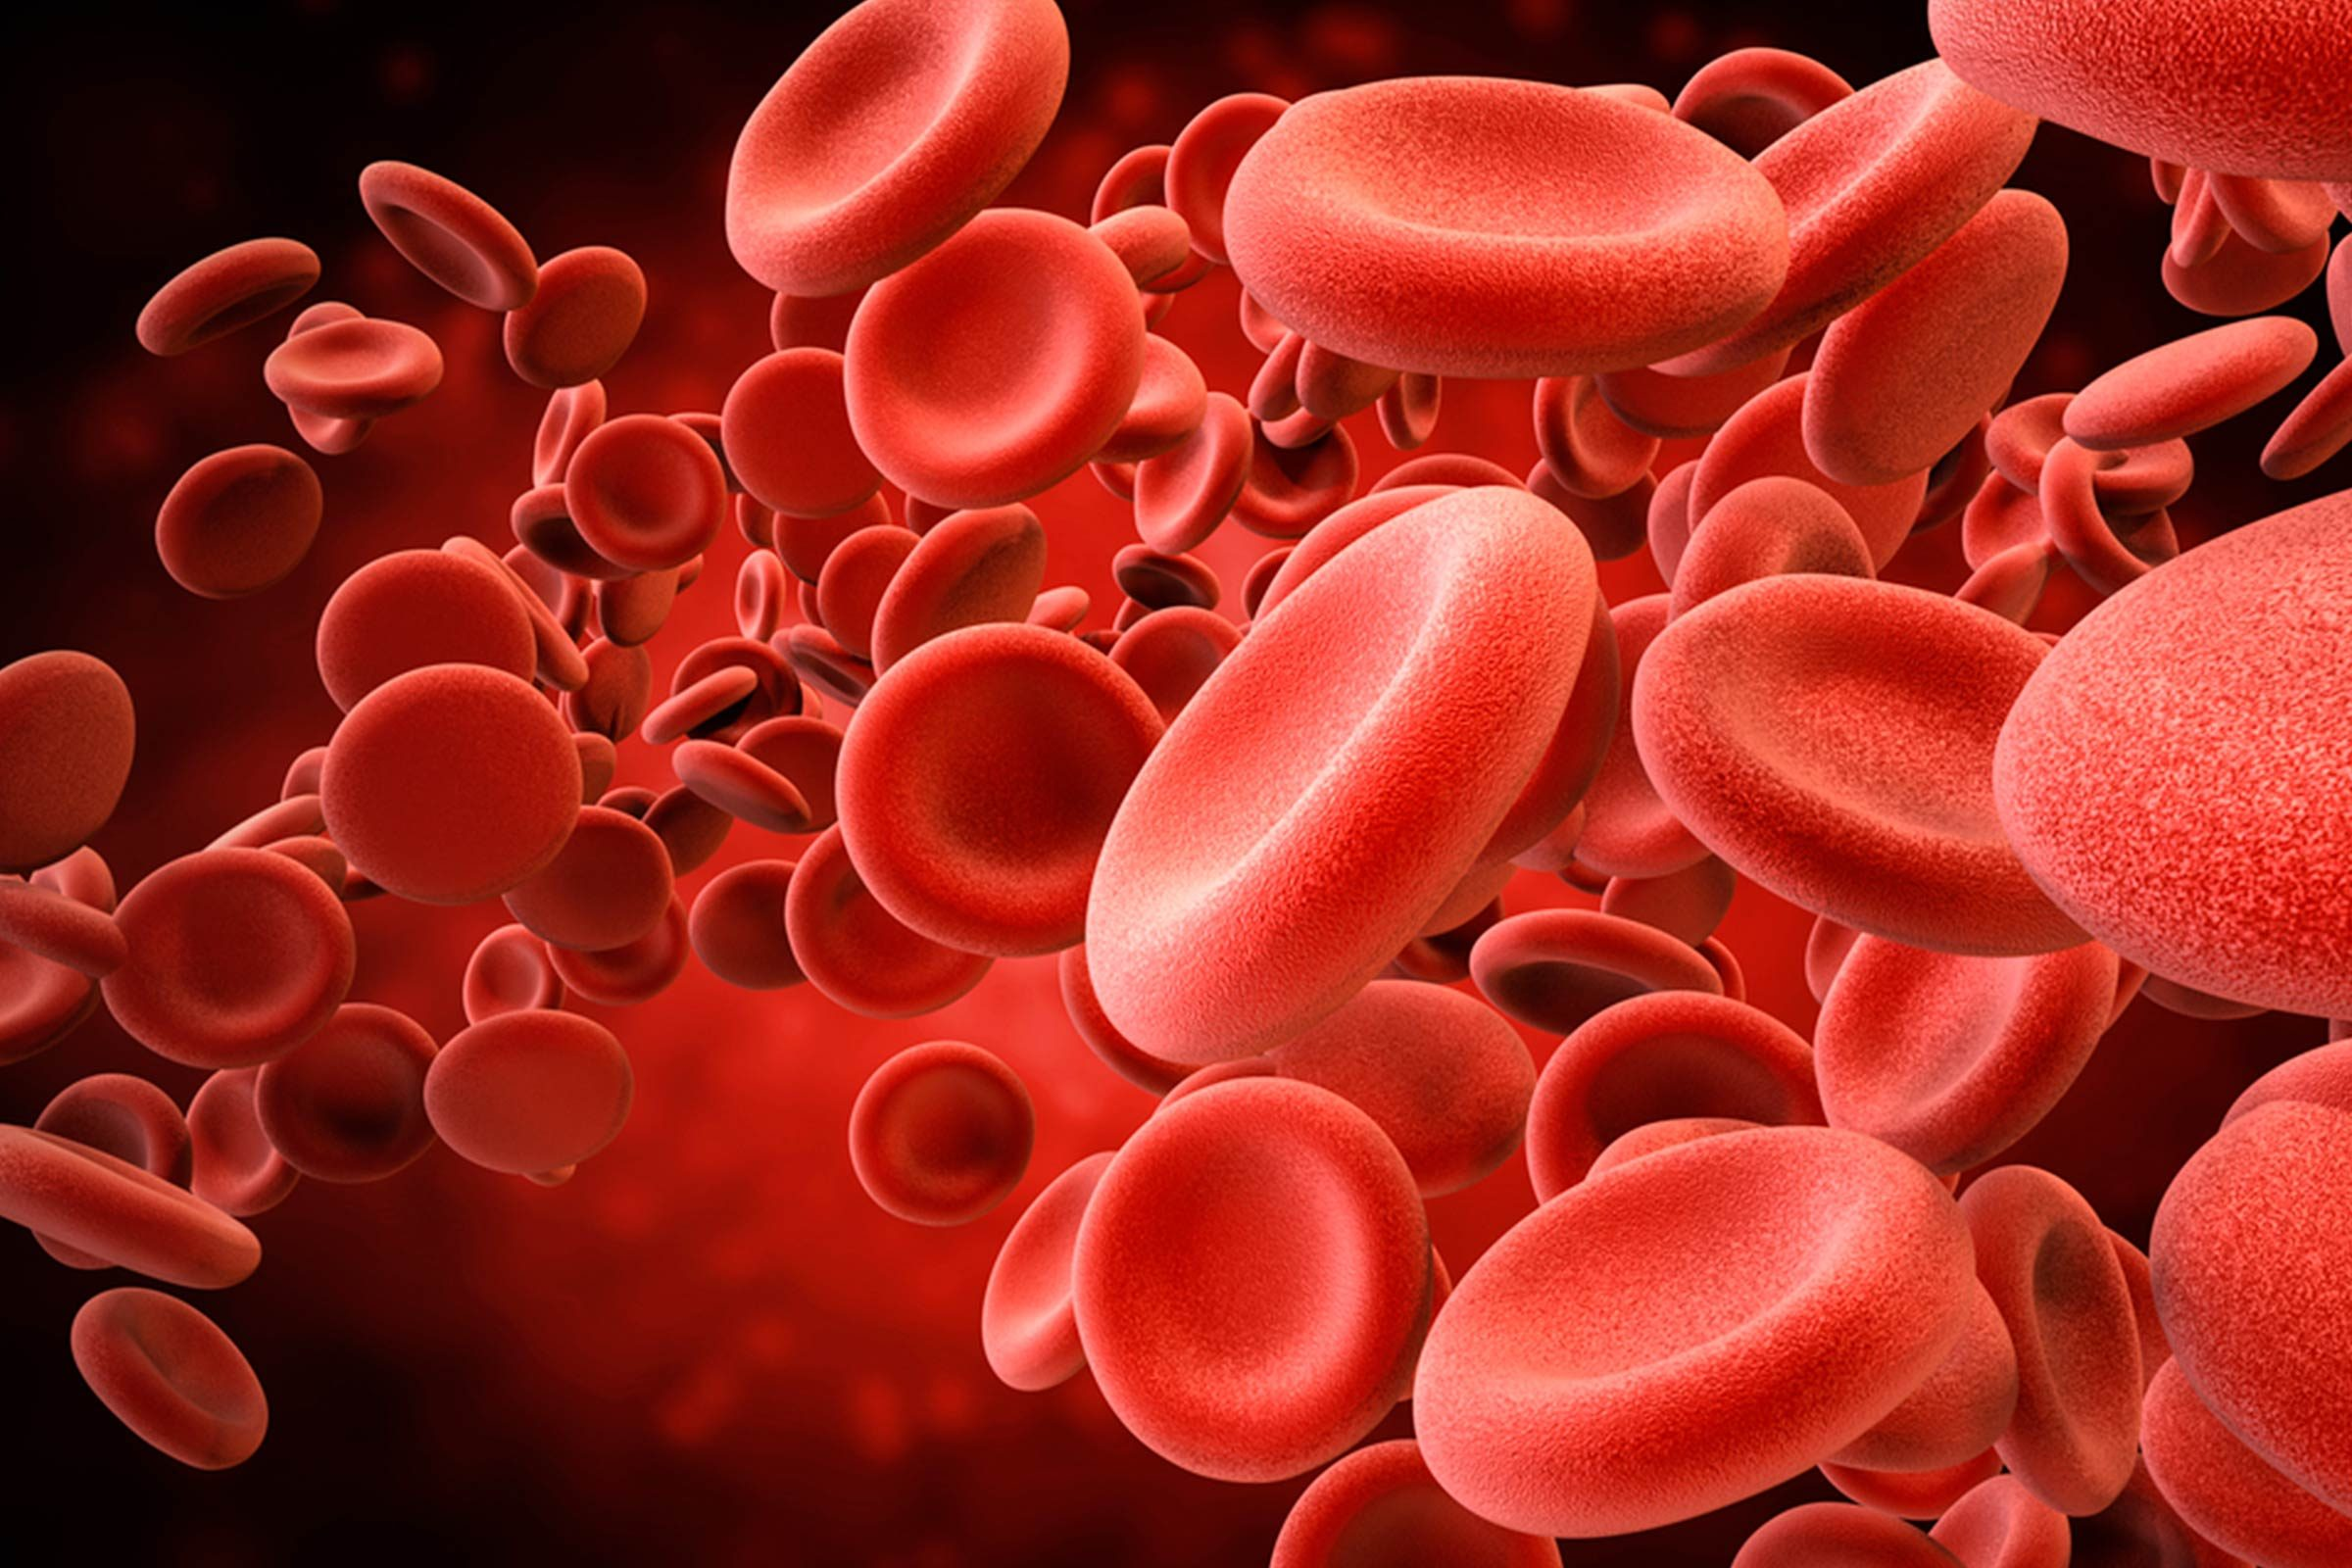 illustration of red blood cells